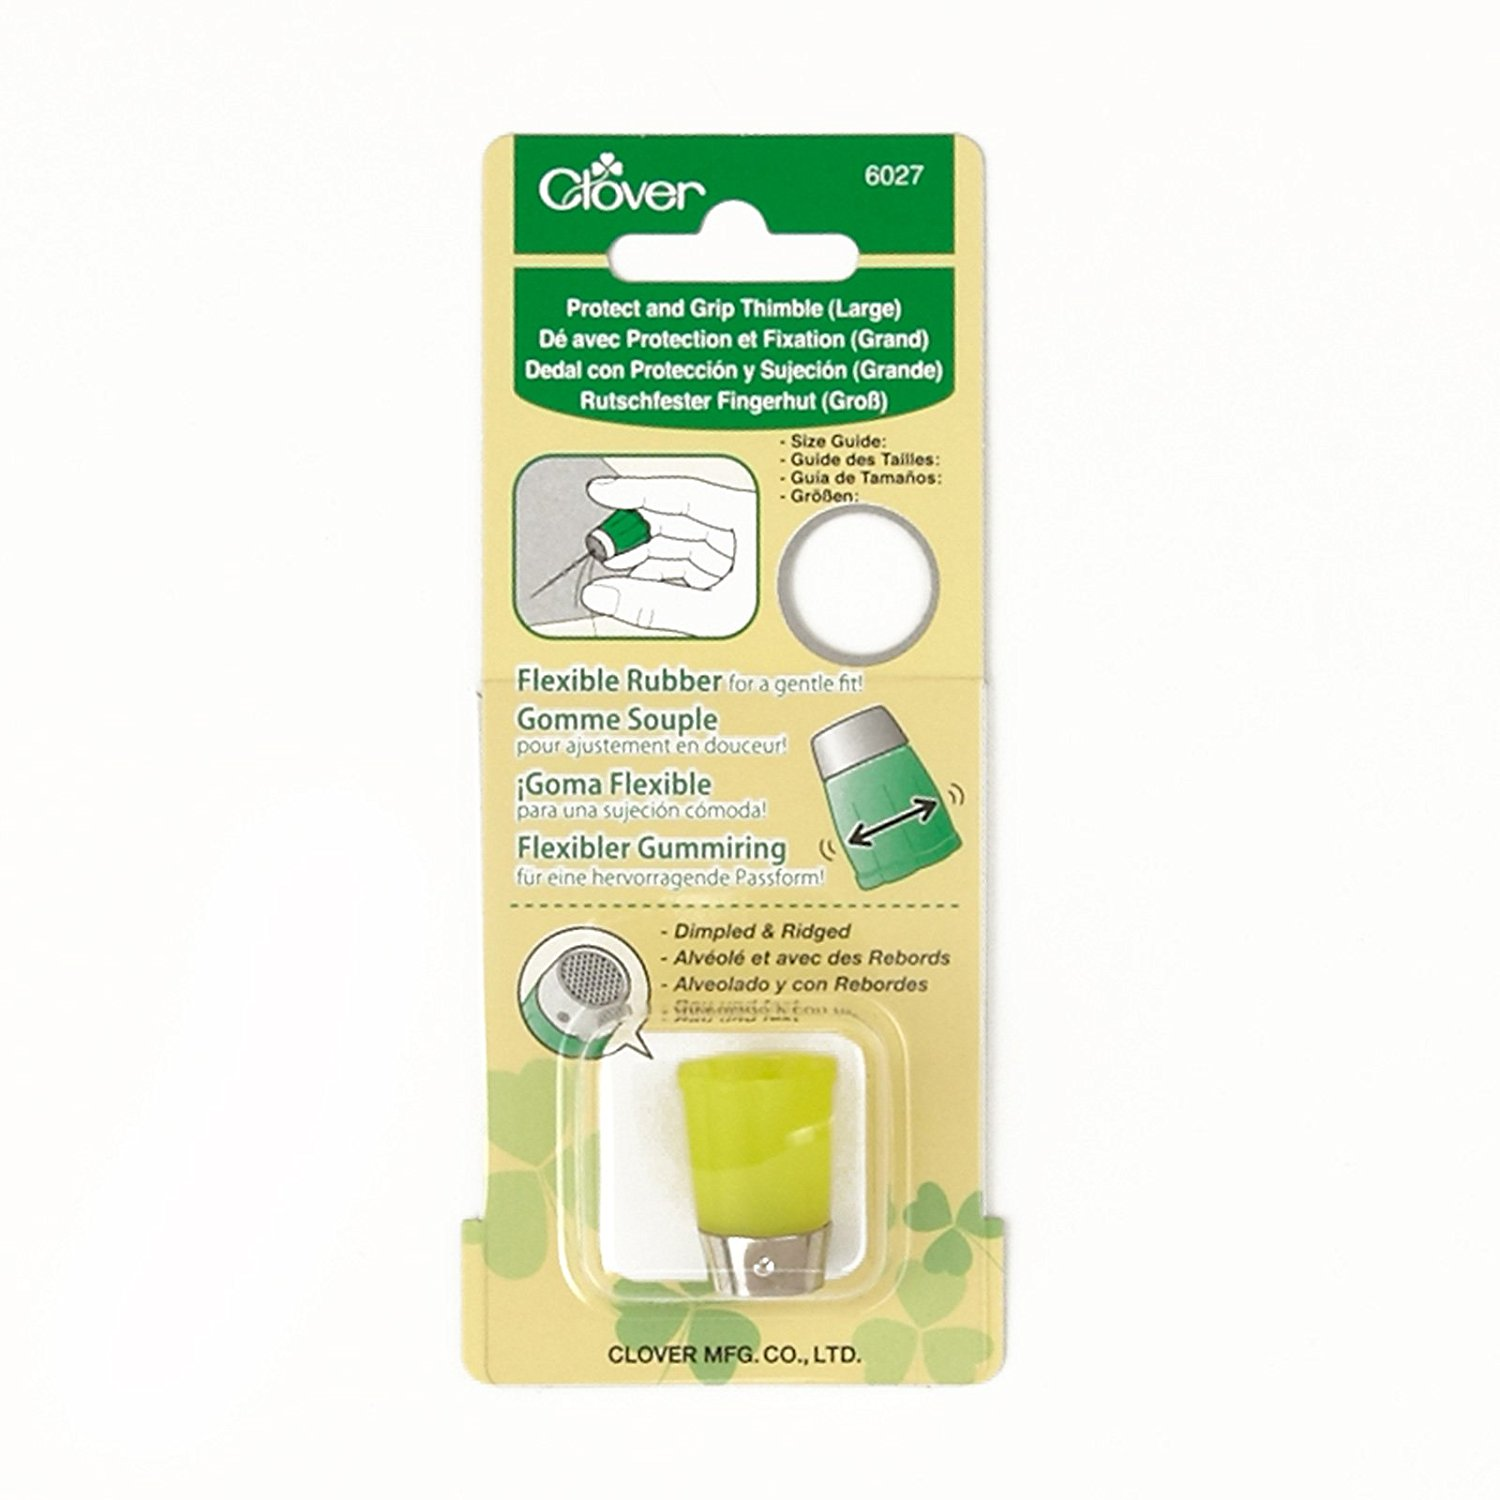 Protect & Grip Thimble Large, From Clover this flexible rubber thimble gently fits your finger and features a dimpled and ridged metal tip that is perfect for hand.., By Clover